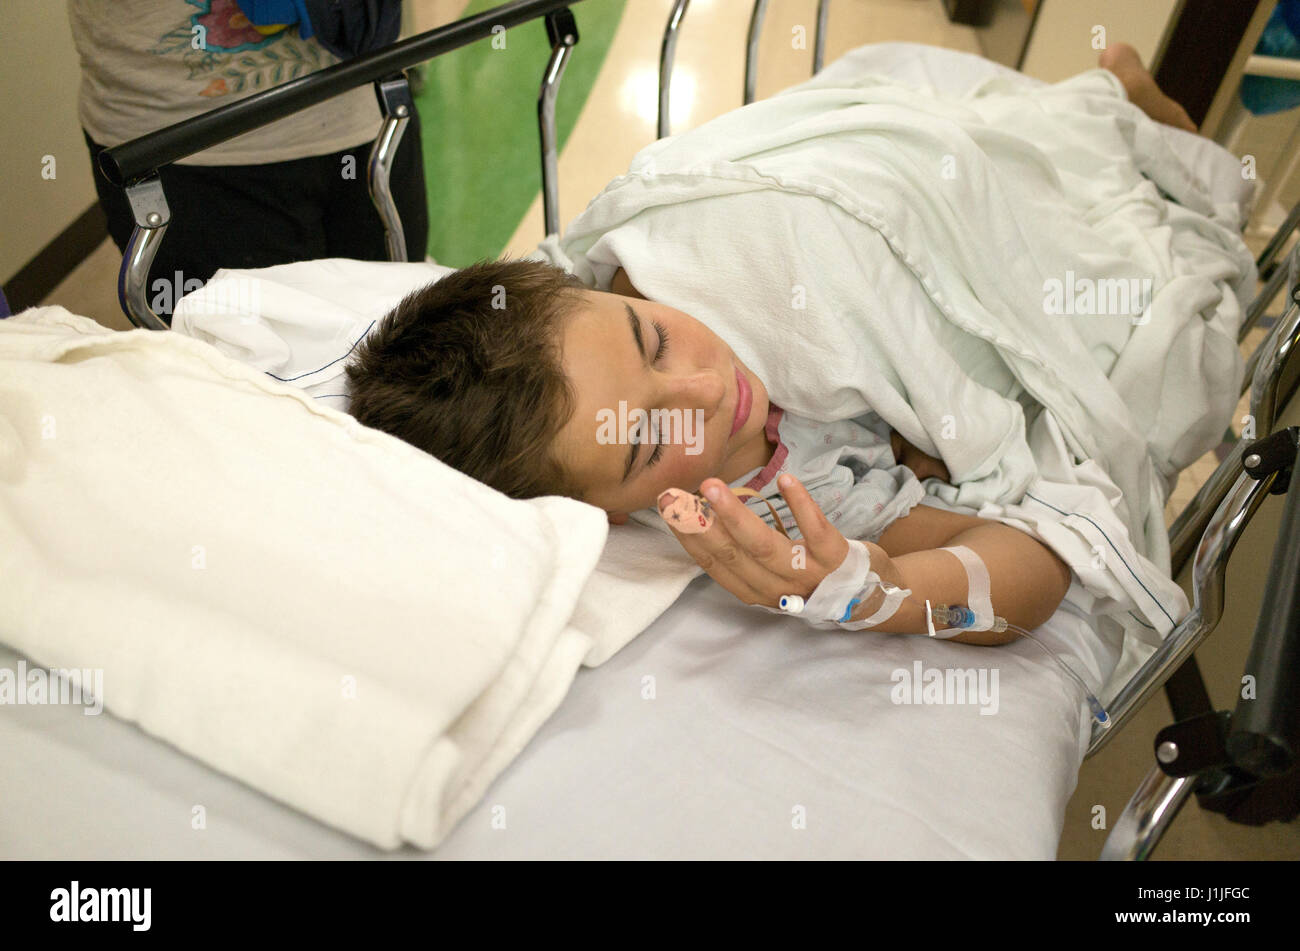 Boy on hospital bed recovering from appendicitis surgery. St Paul Minnesota MN USA - Stock Image